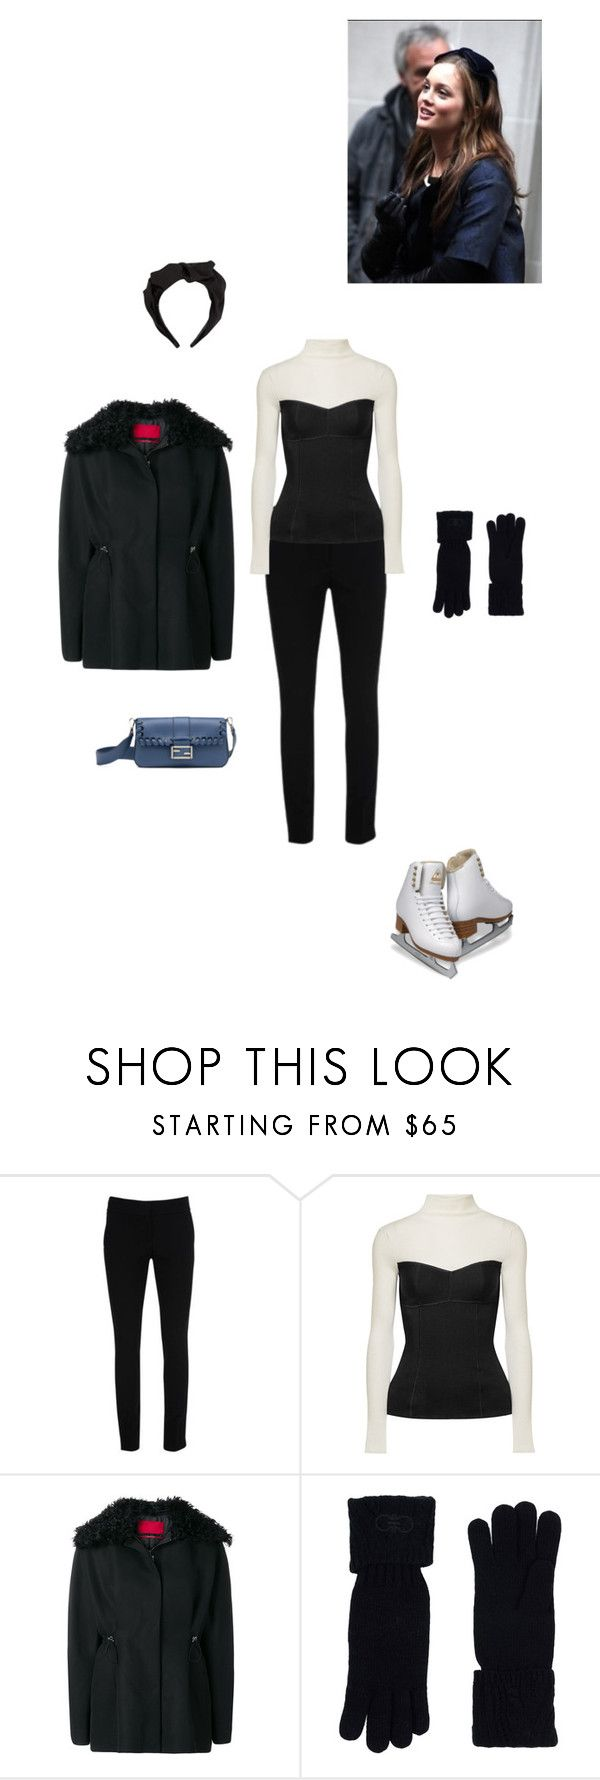 """""""Ice skating."""" by roxok ❤ liked on Polyvore featuring Warehouse, Theory, Jennifer Behr, Moncler Gamme Rouge, Salvatore Ferragamo, fendi and iceskatingoutfit"""